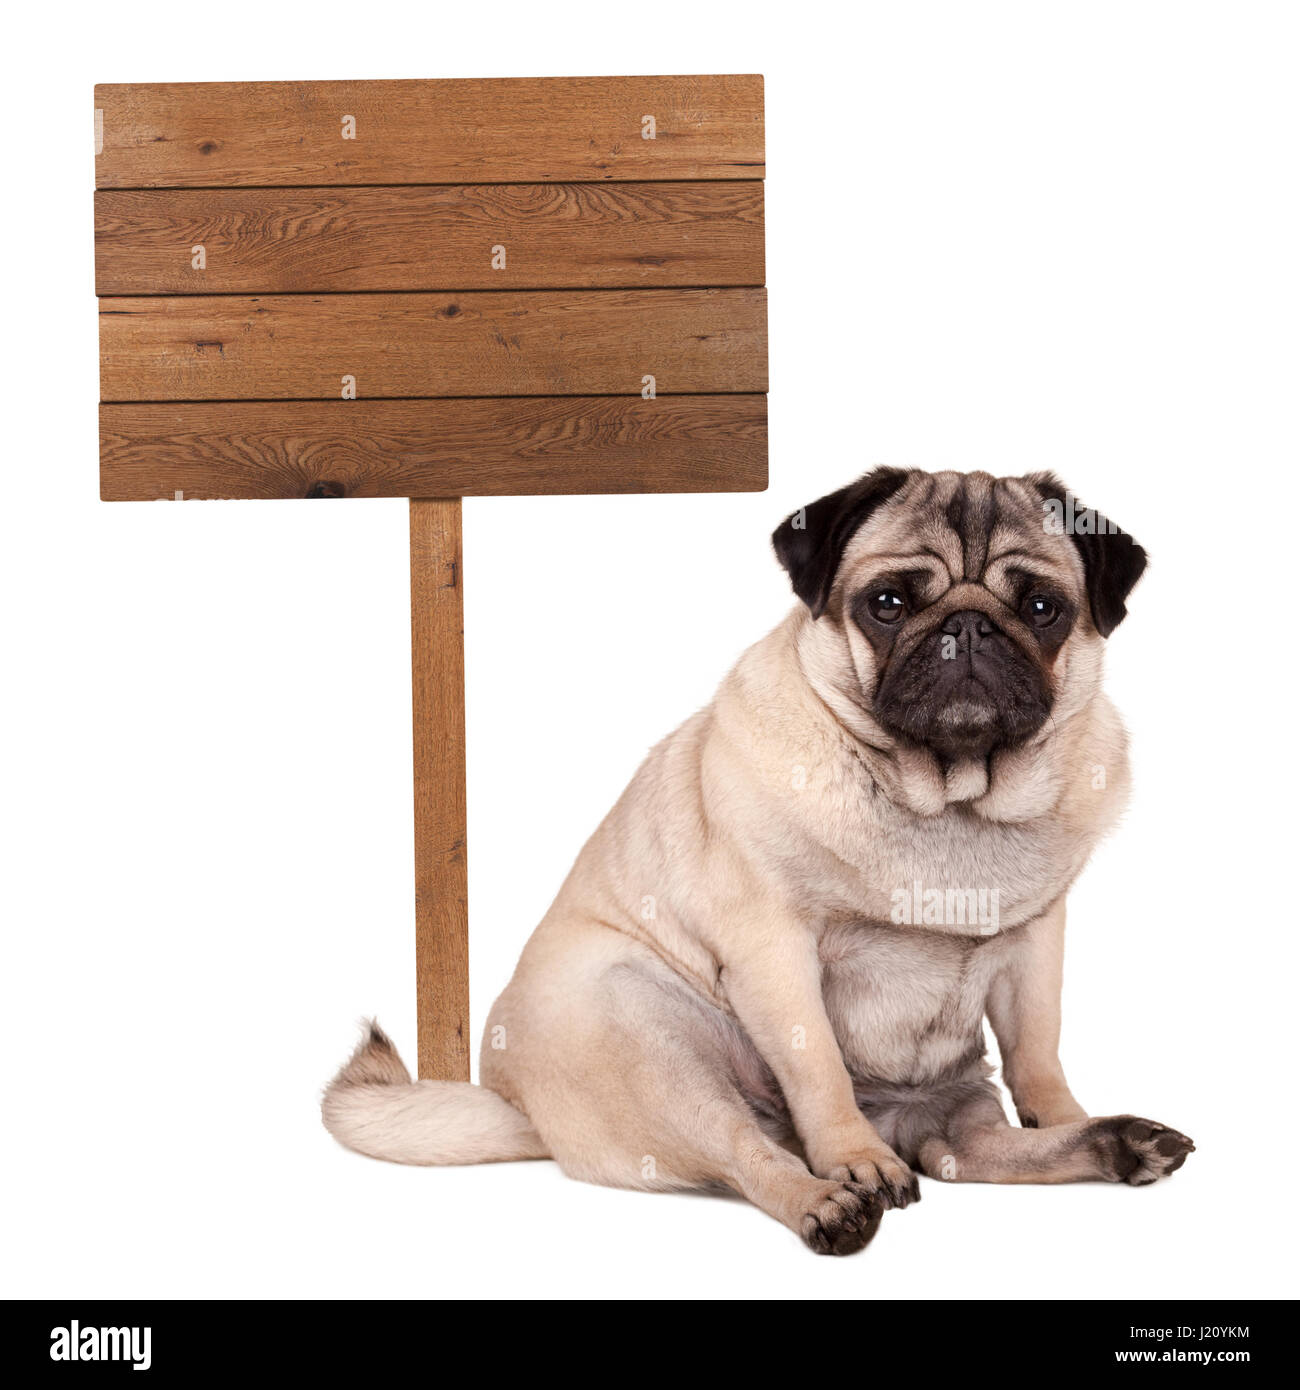 lovely cute pug puppy dog sitting down next to blank wooden sign on pole, isolated on white background Stock Photo